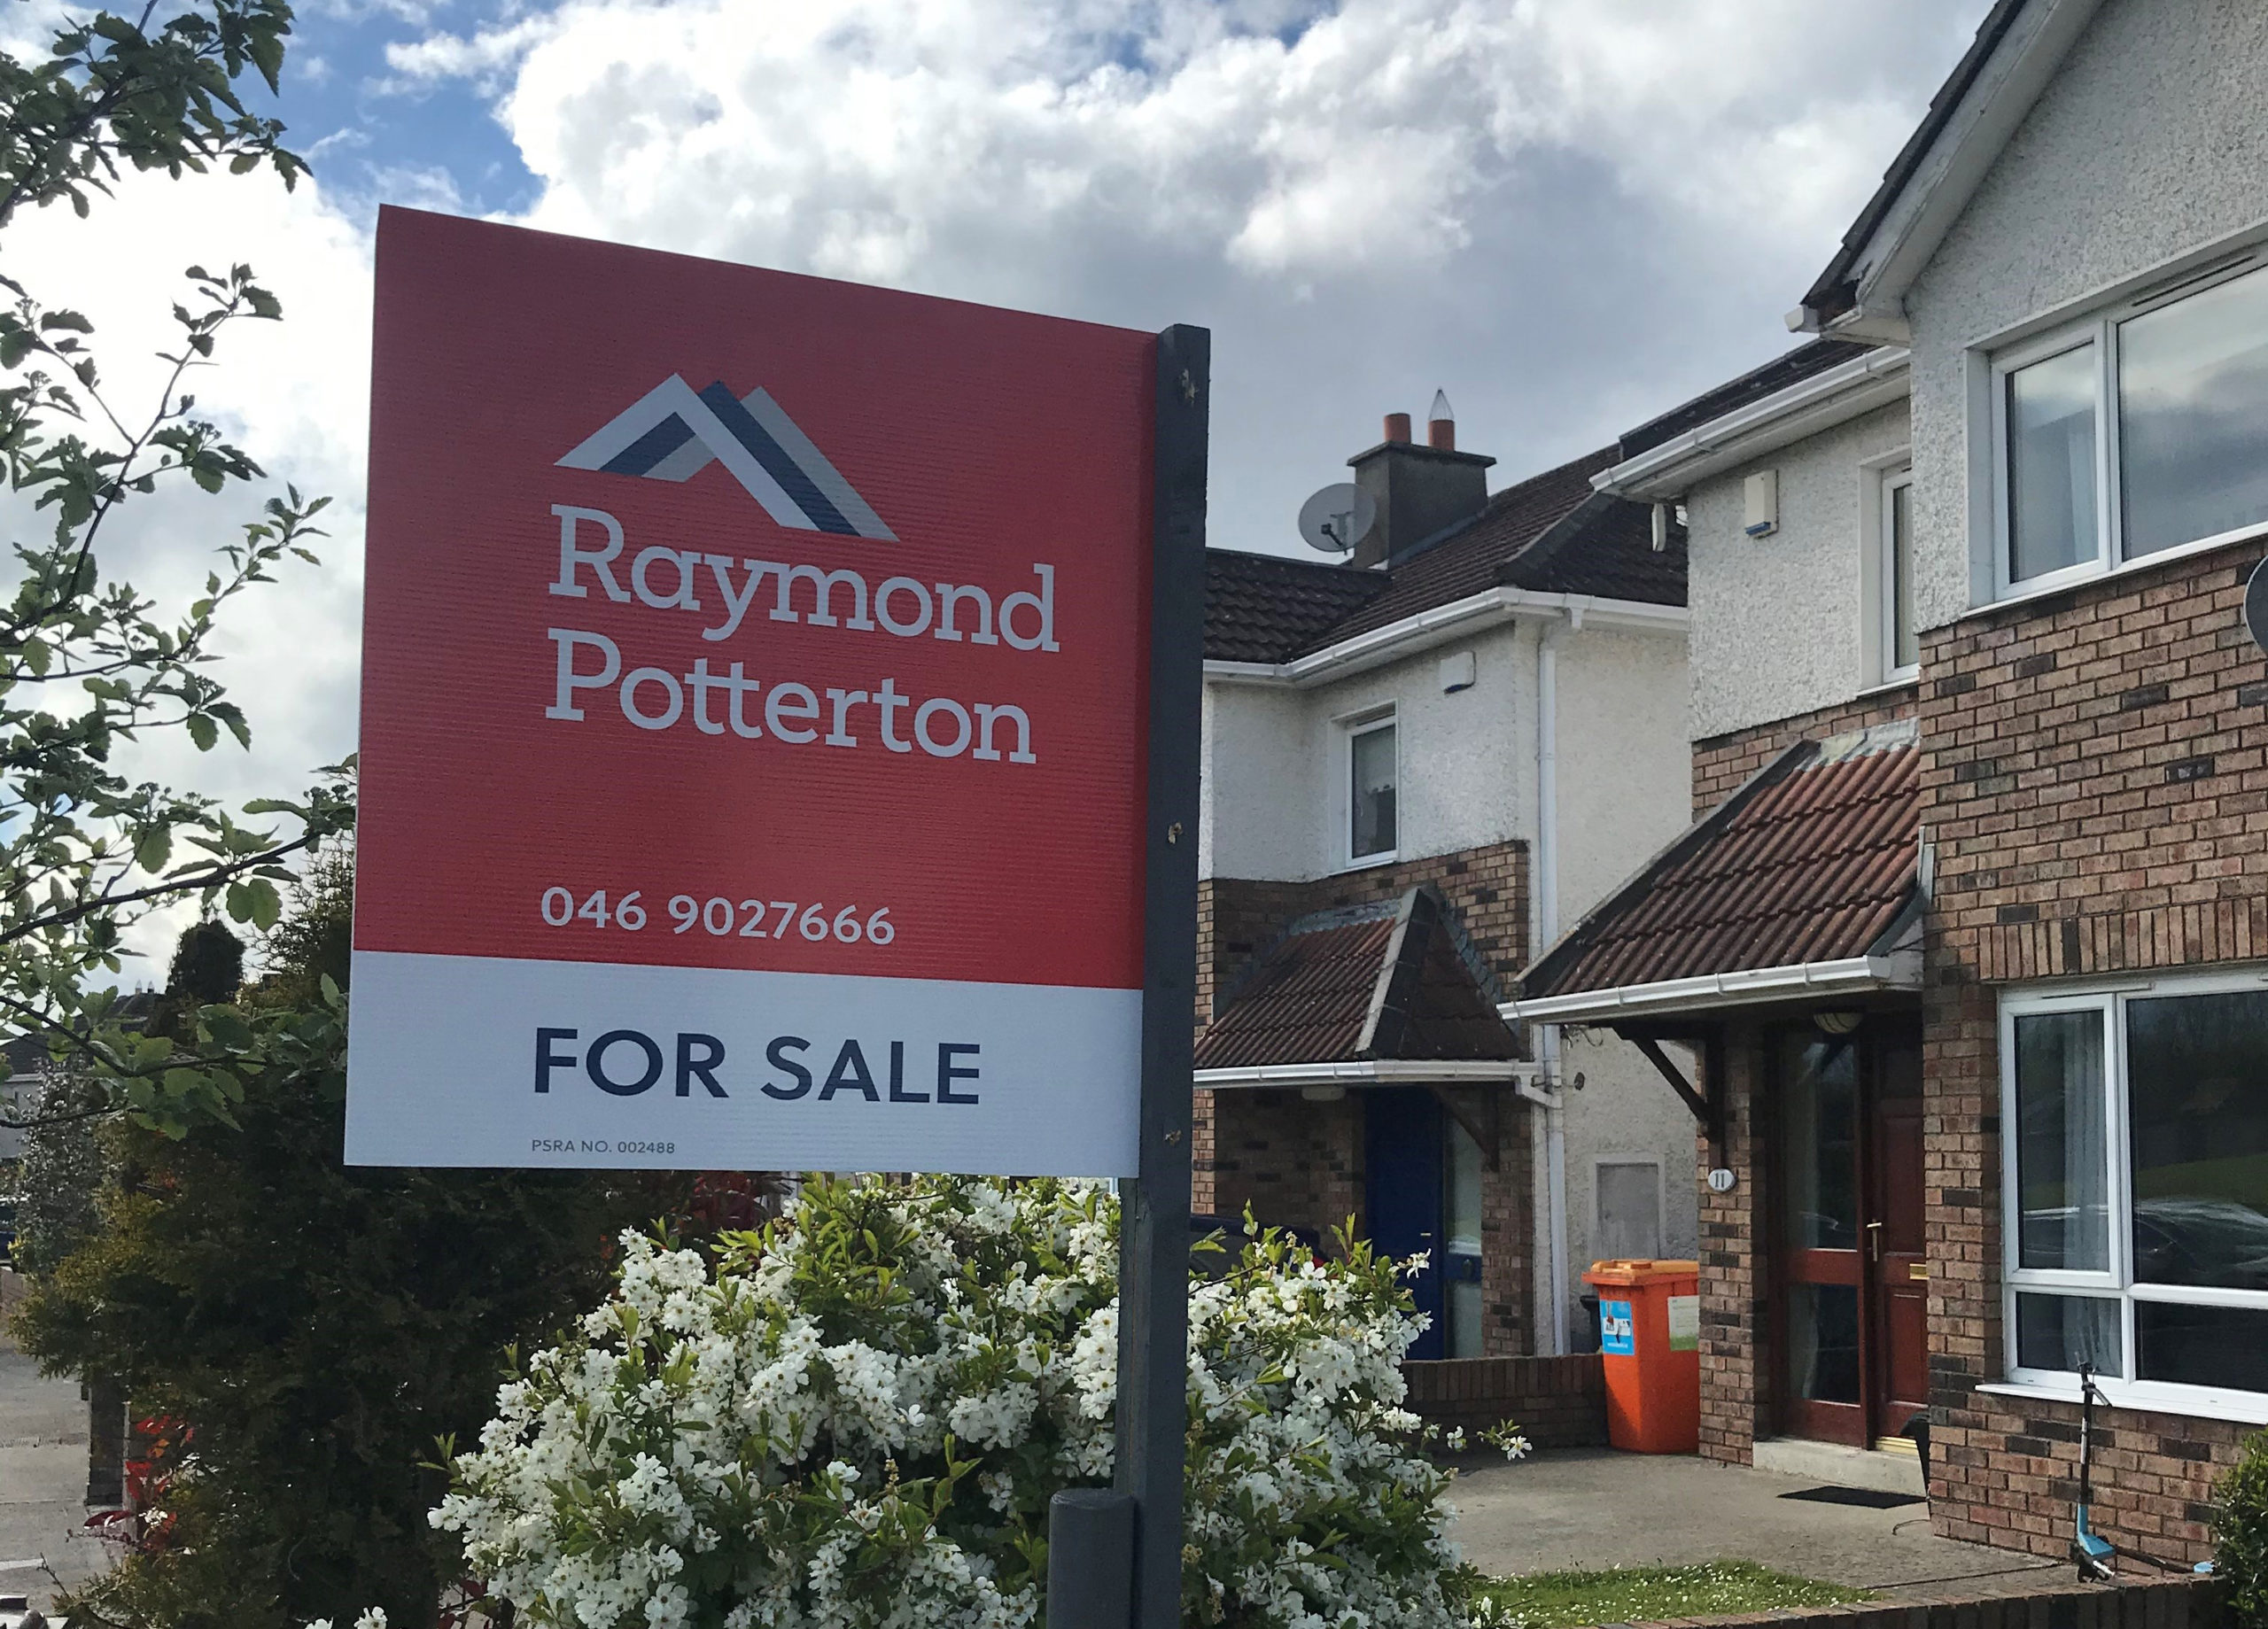 Raymond Potterton Refresh their Brand and Introduce their New Website